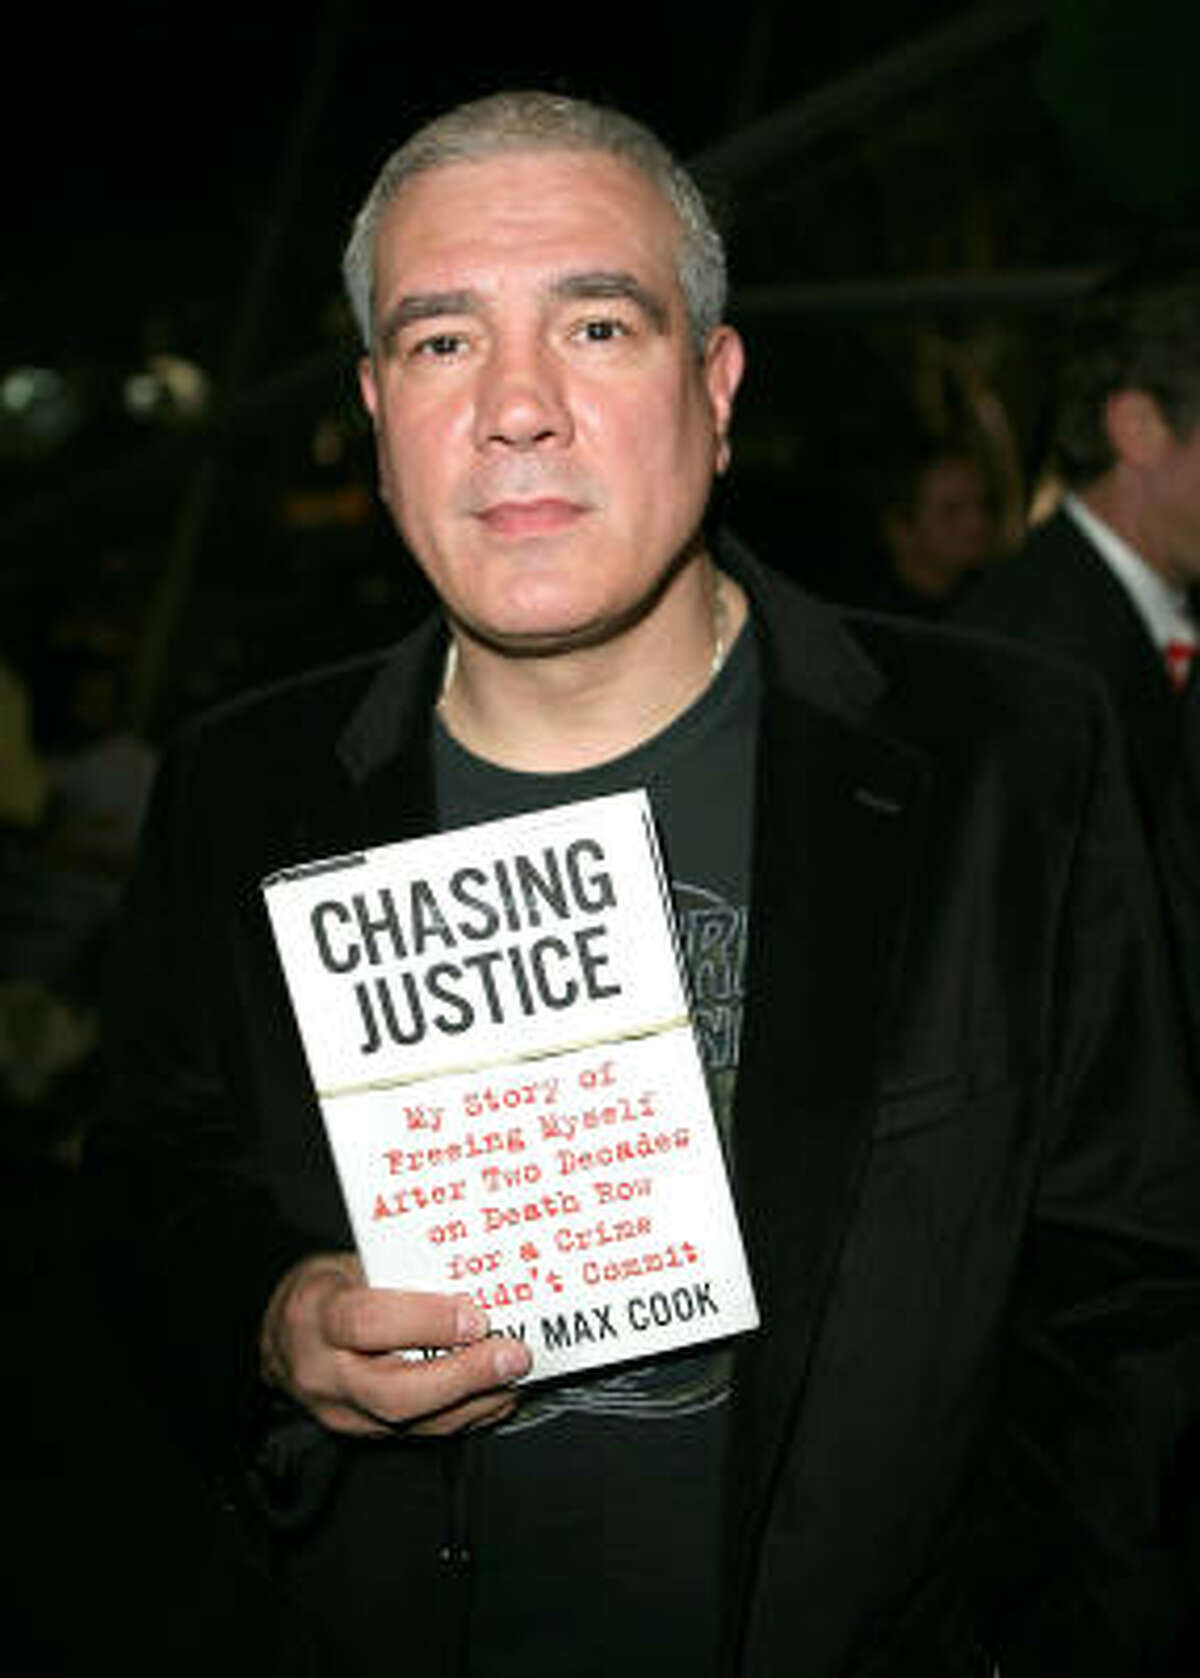 Kerry Max Cook, who served 22 years on death row, wrote about Graves' case in his 2007 book Chasing Justice.